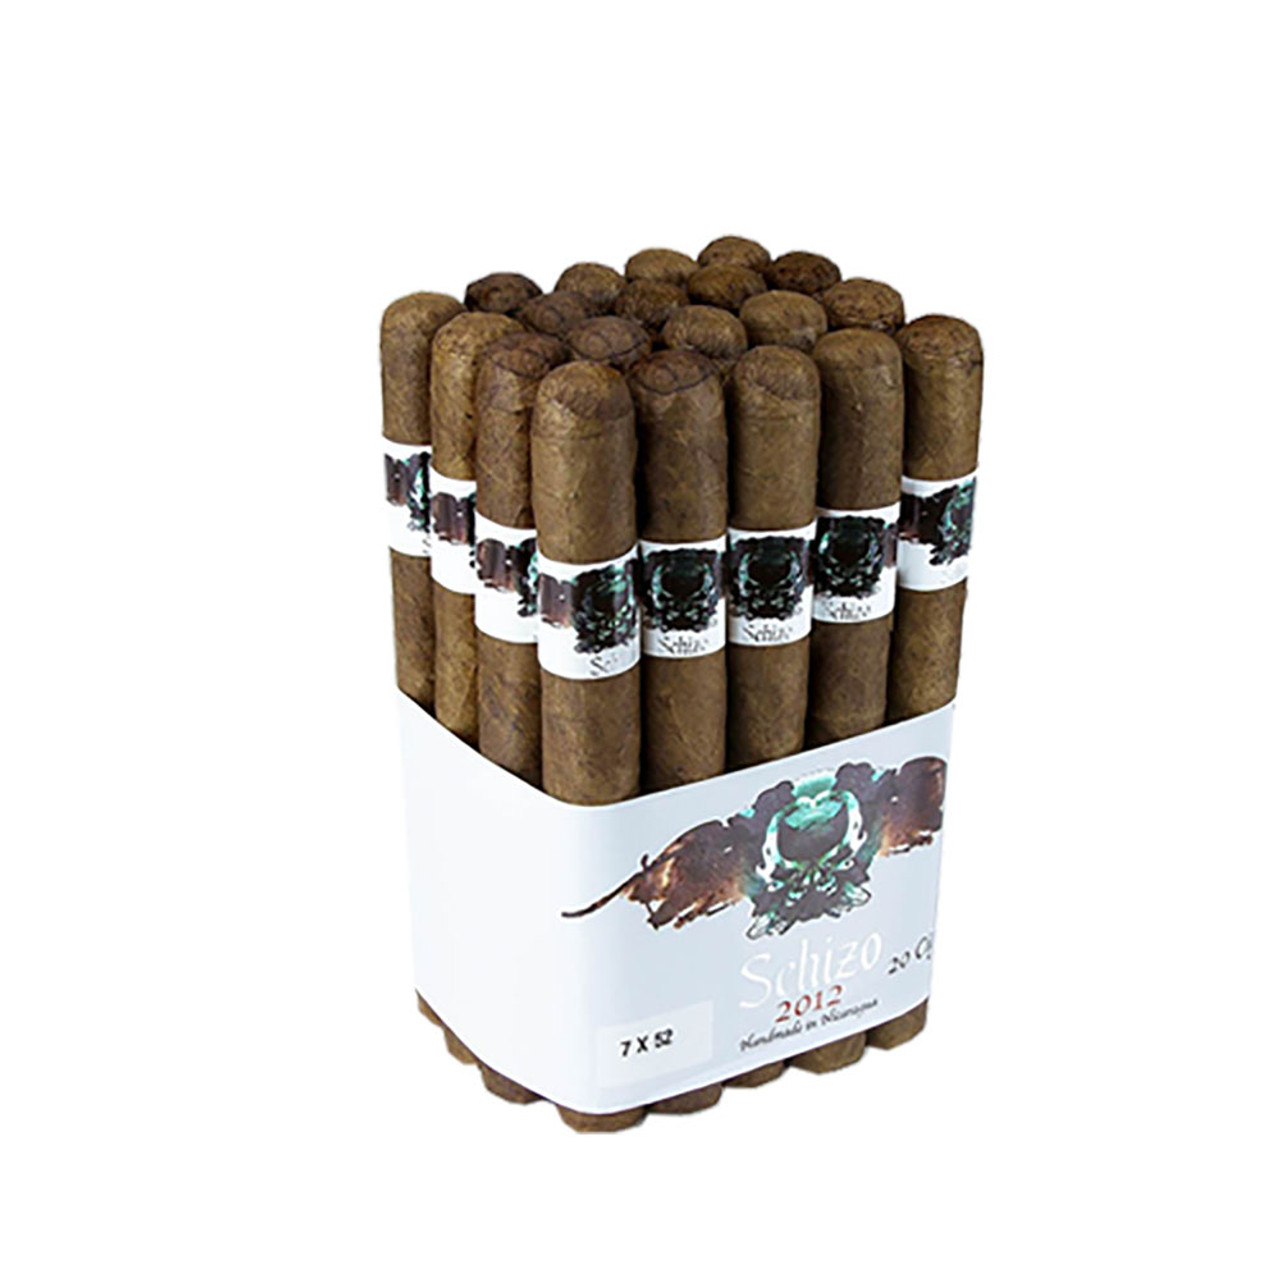 Asylum Schizo Churchill Cigars - Natural Bundle of 20